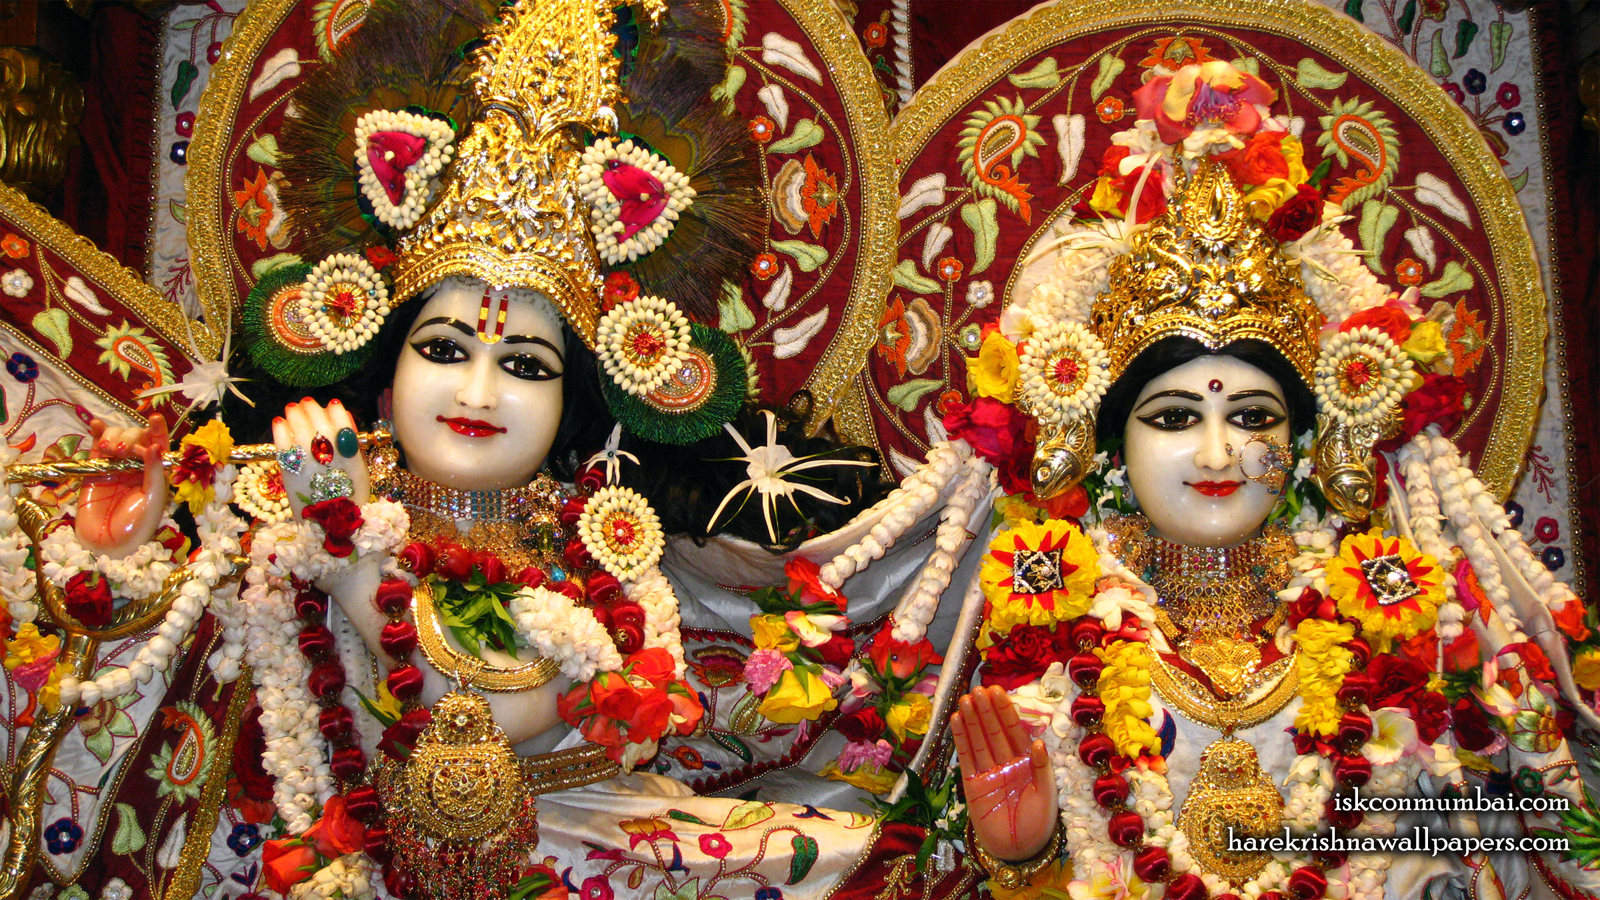 Sri Sri Radha Rasabihari Close up Wallpaper (004) Size 1600x900 Download